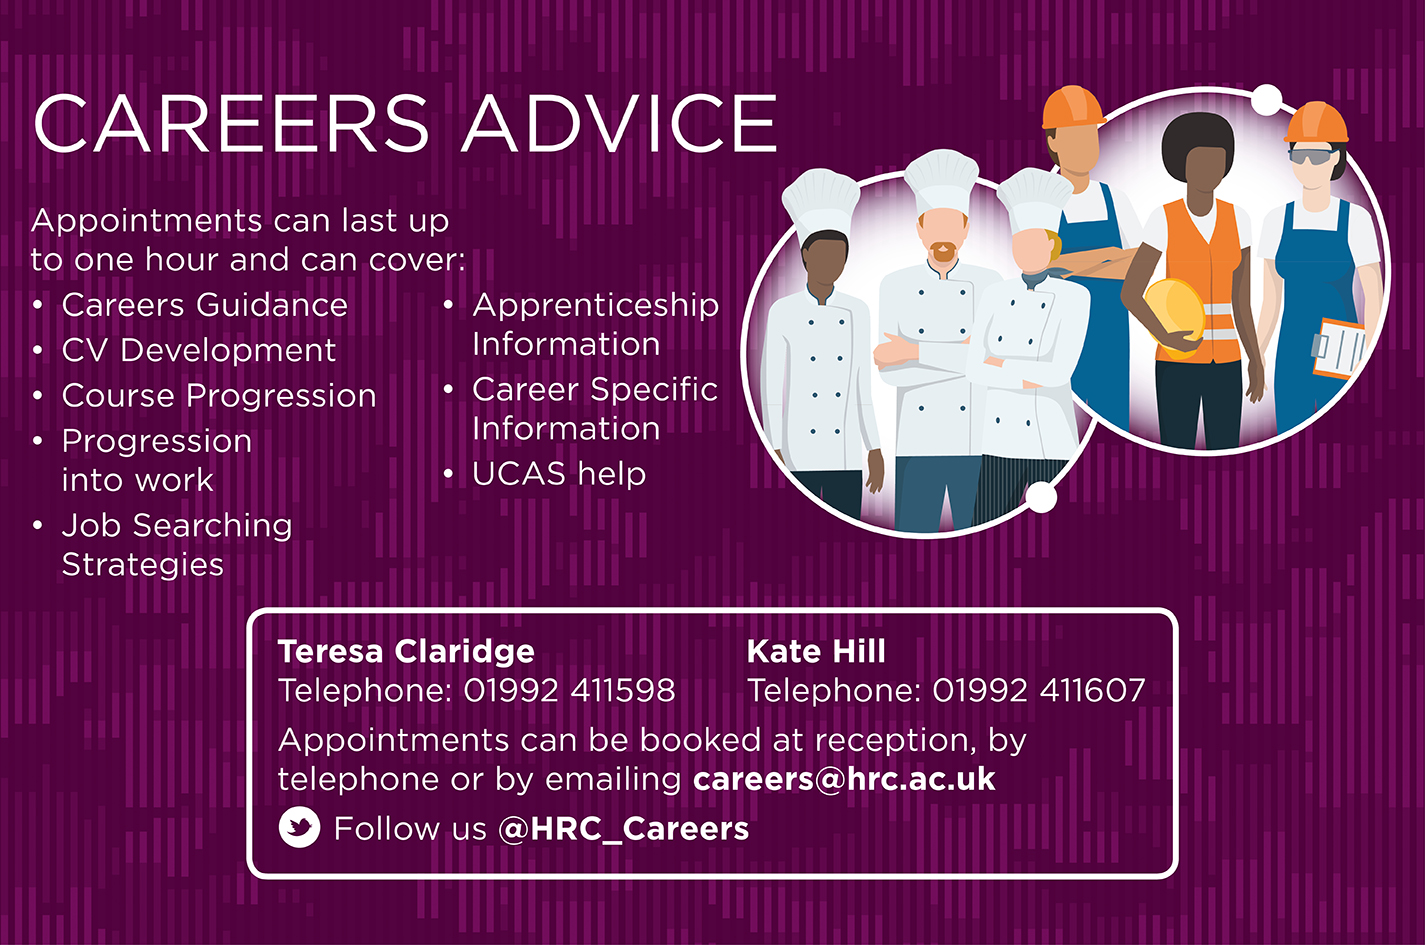 Careers Advice Screen 2020